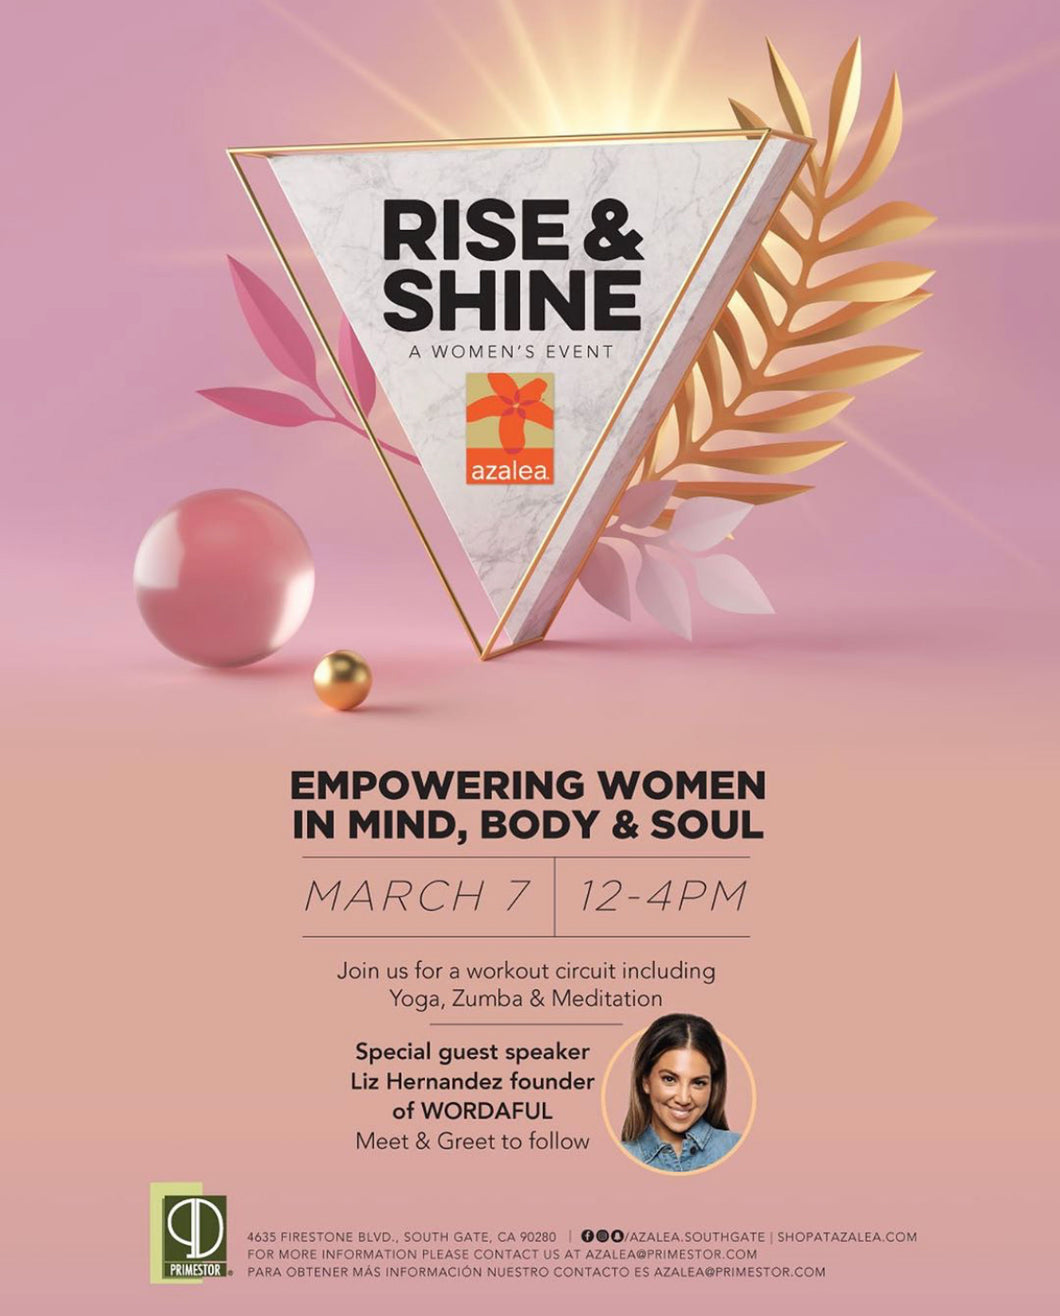 Empowering Women event with special guest Liz Hernandez Saturday March 7, 2020 at the Azalea shopping center in South Gate, CA